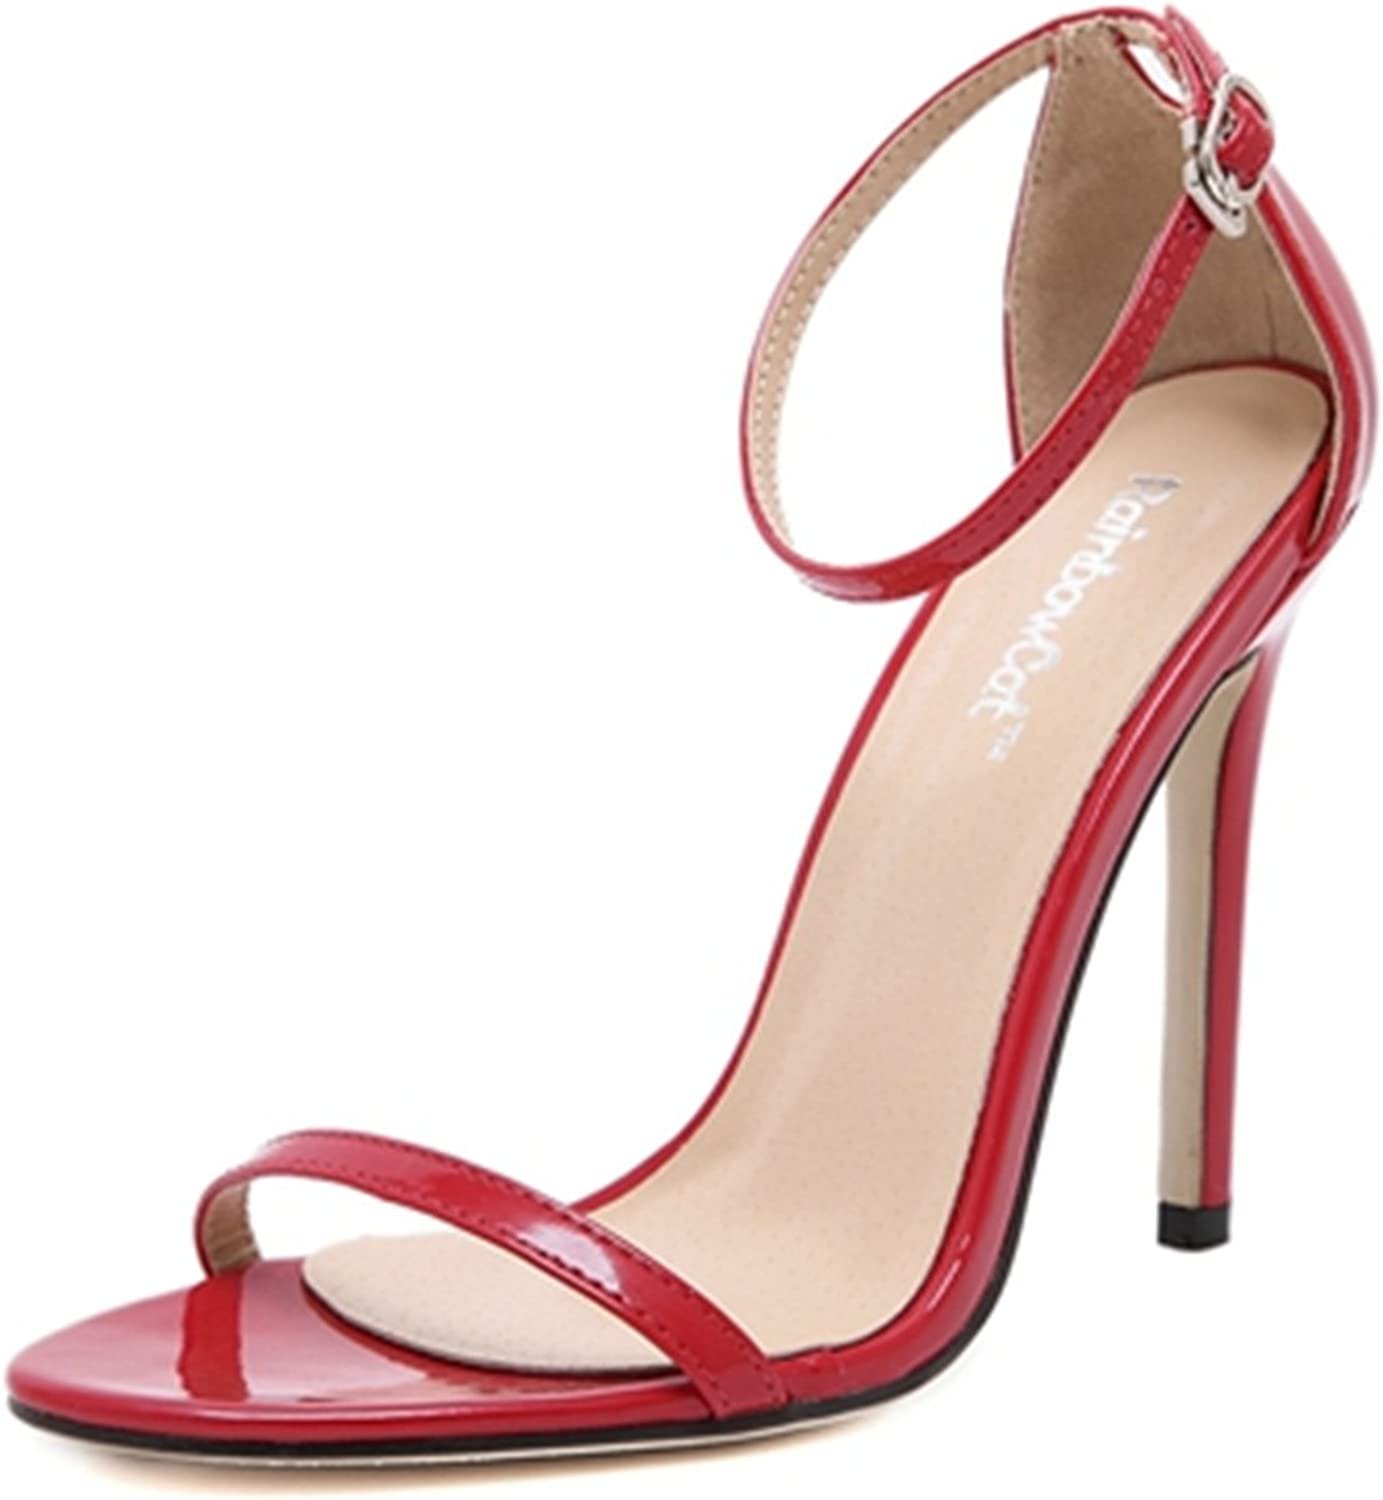 Robert Westbrook Woman Summer shoes T-Stage Classic Dancing High Heel Sandals Sexy Stiletto Party Wedding shoes Yd190 Red 5.5